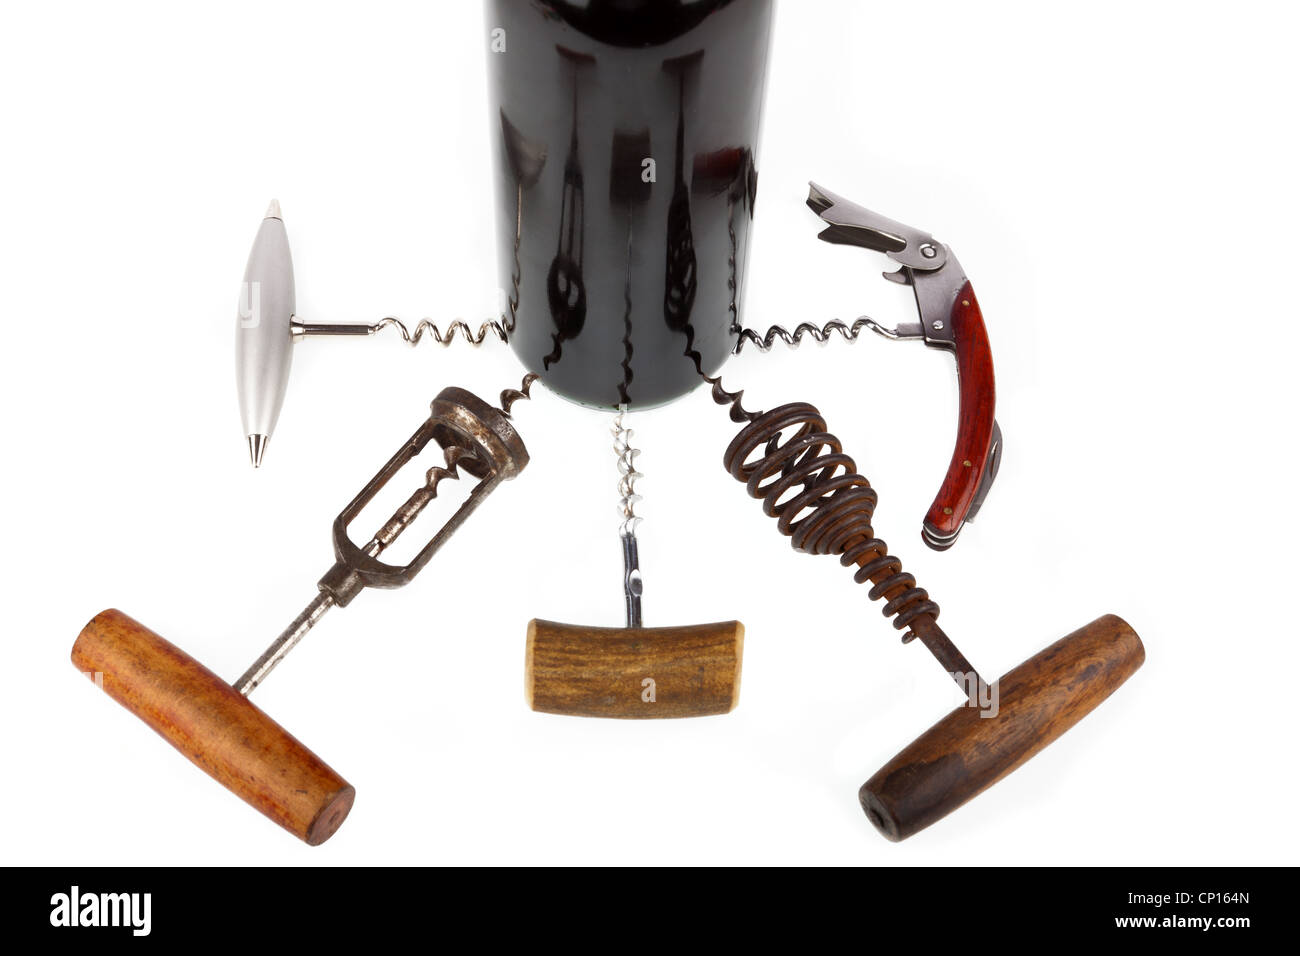 Some are different corkscrews around a wine bottle - Stock Image